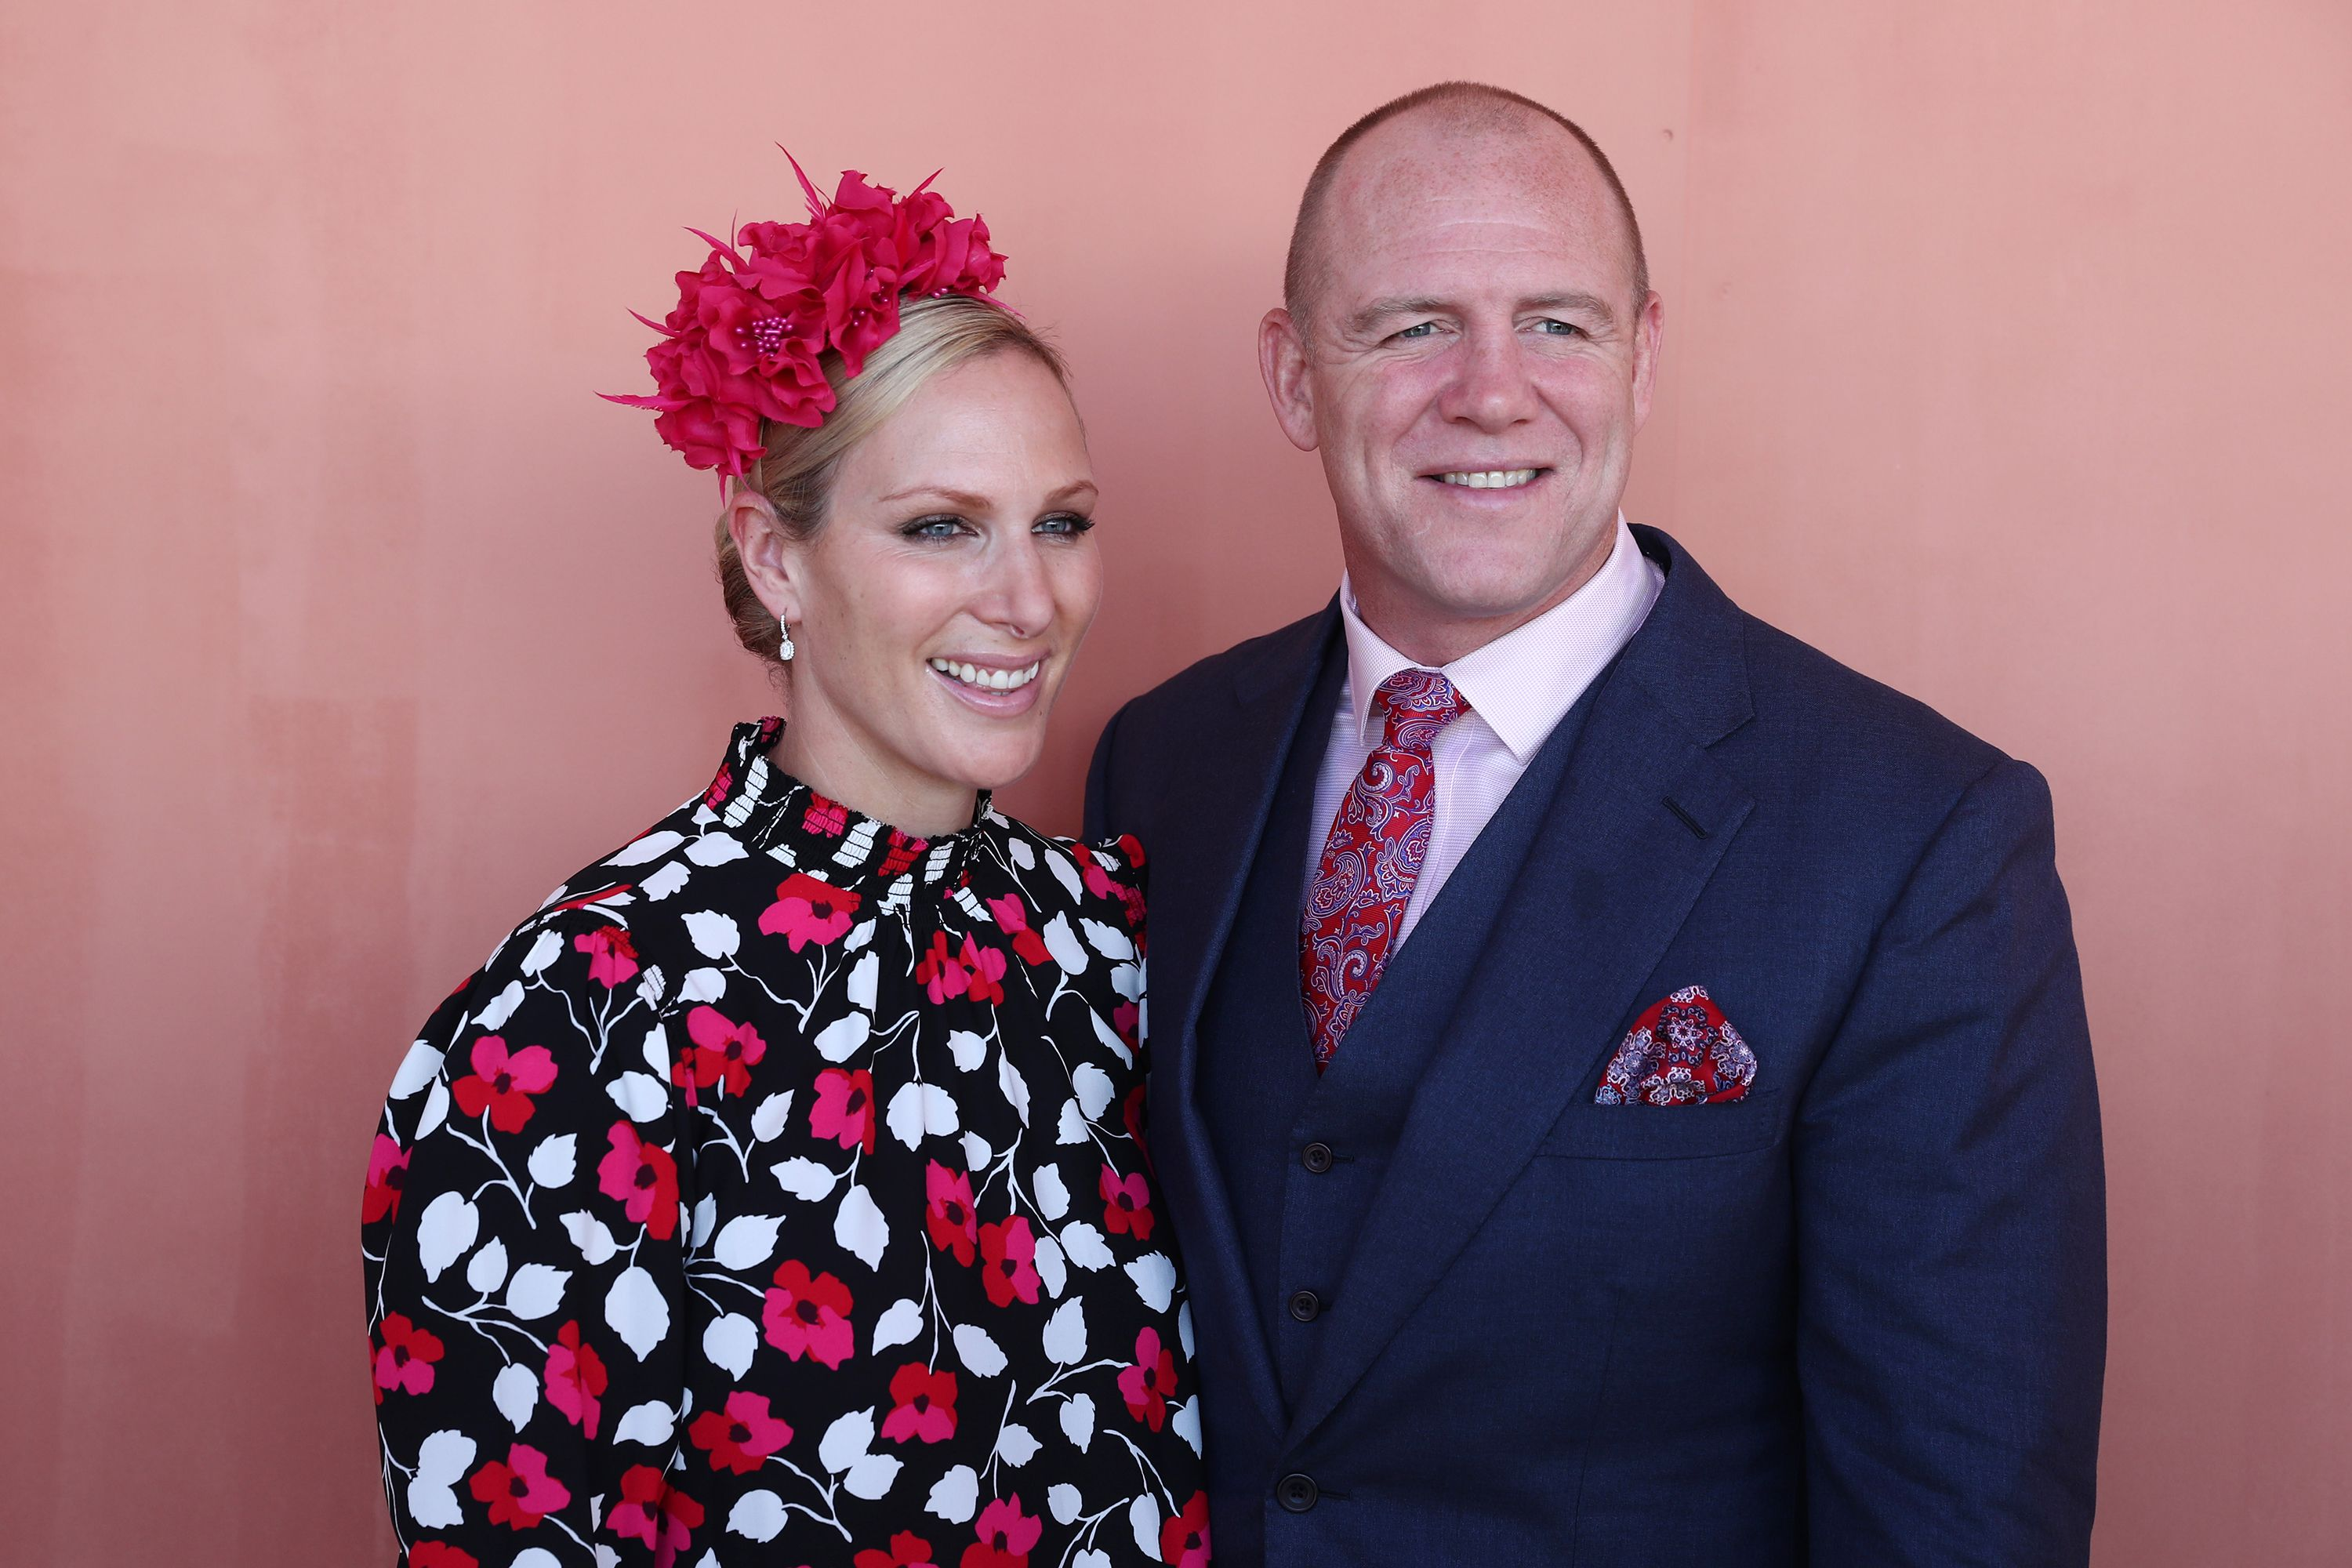 Zara Phillips and Mike Tindall found out about baby Archie's birth on a royal WhatsApp group